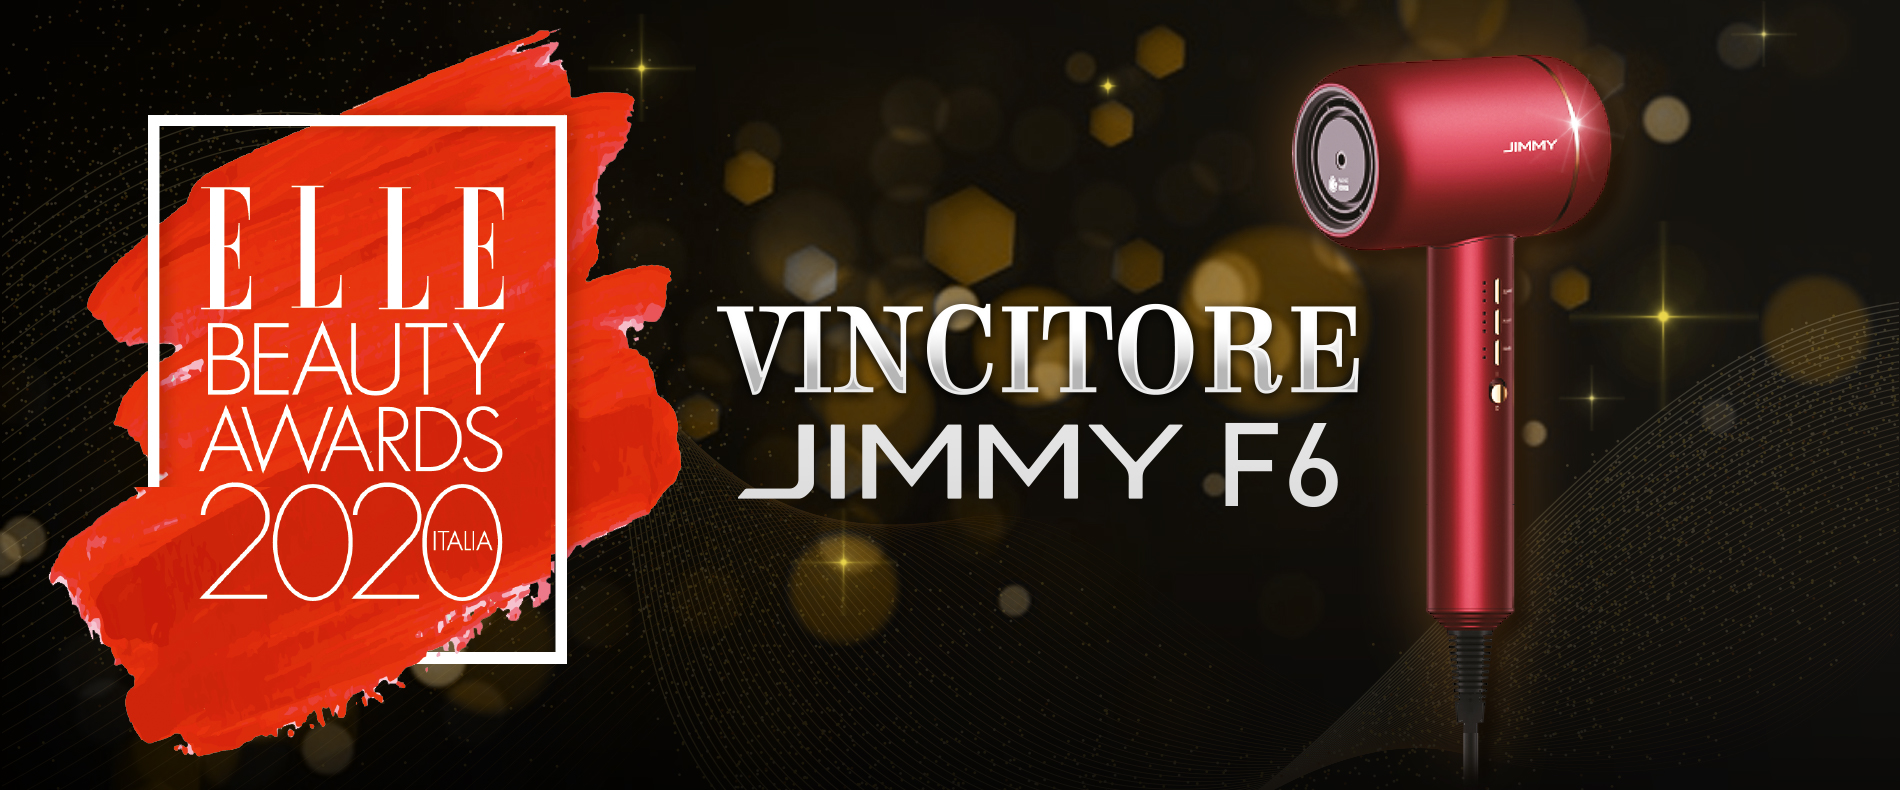 JIMMY F6 VIncitore ELLE Beauty Awards 2020